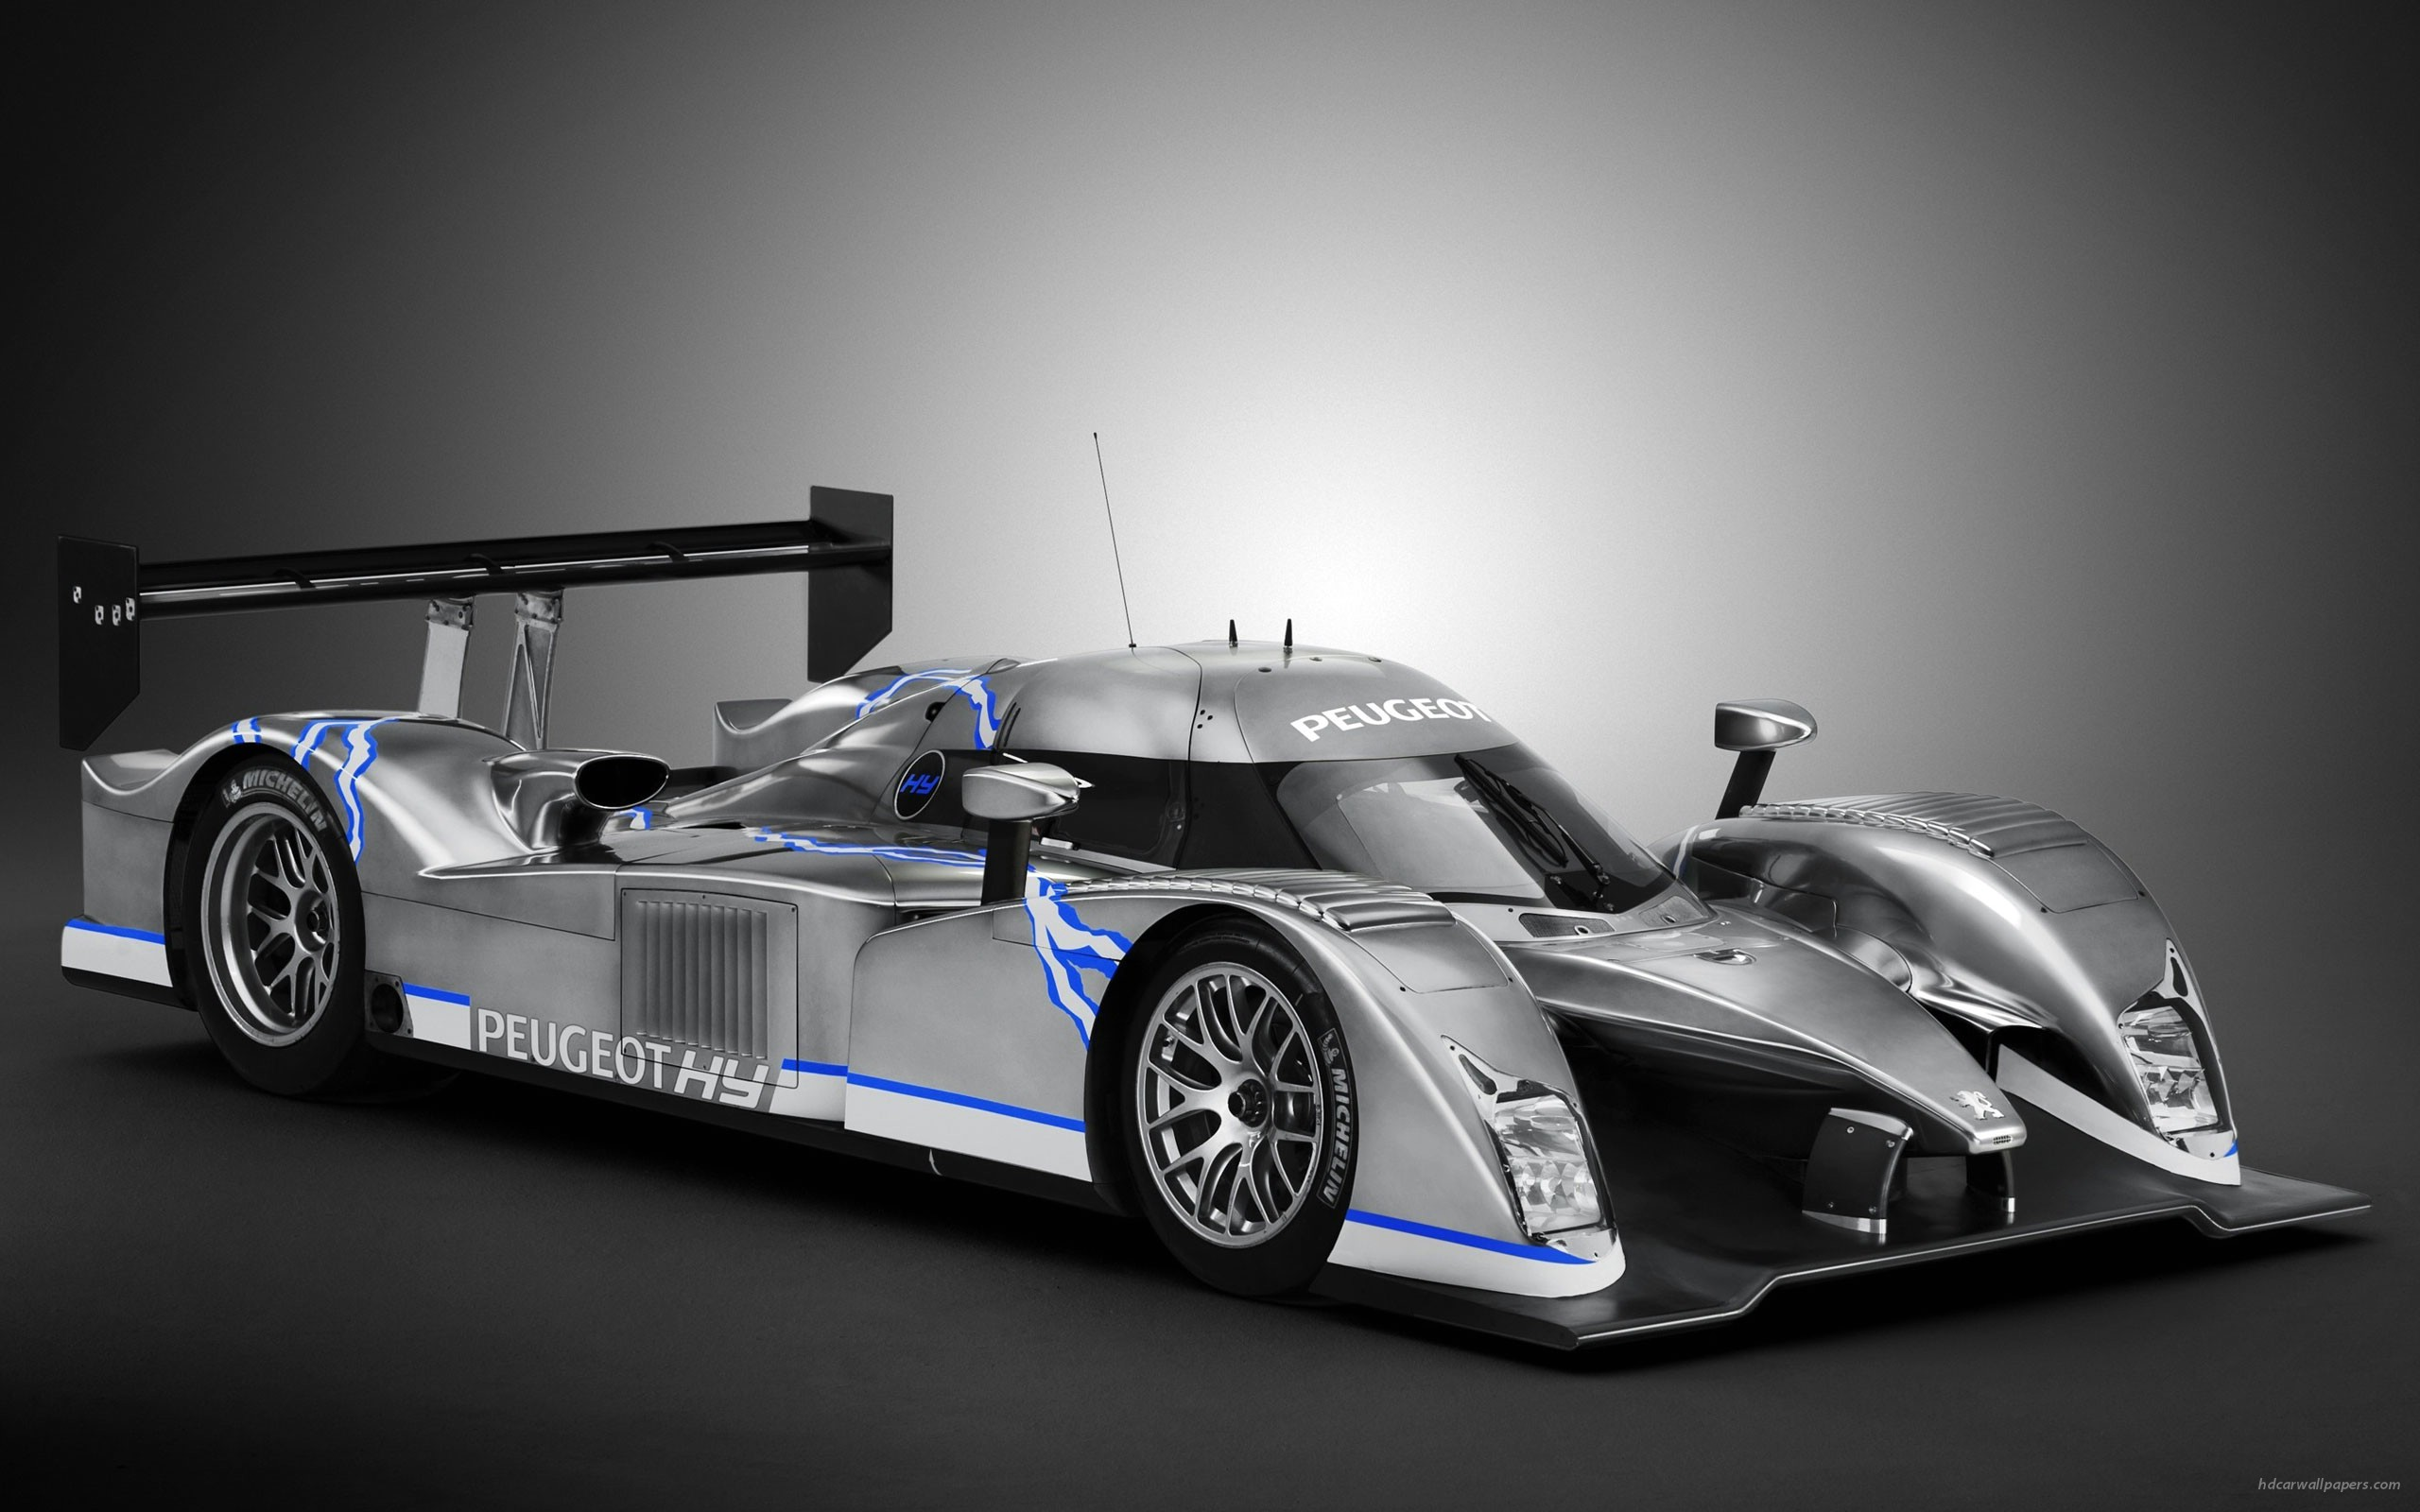 The Peugeot 908 HYbrid Race 285.2 Kb